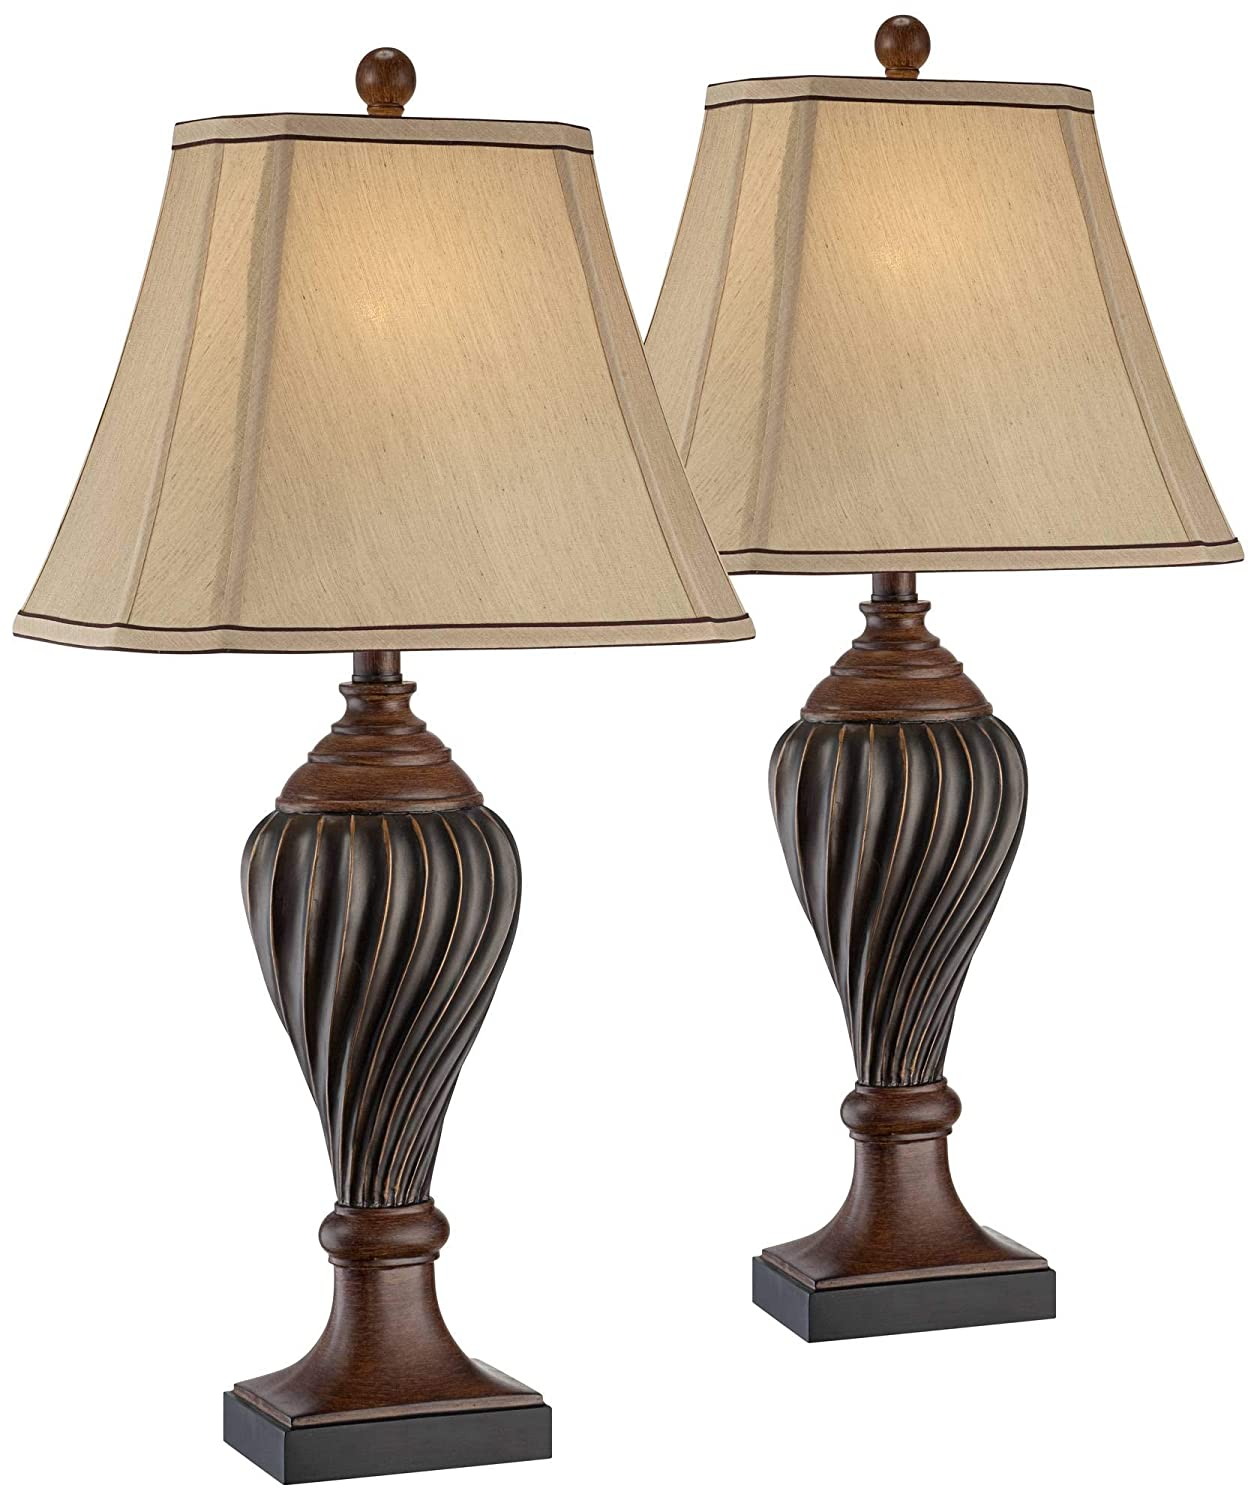 Traditional table lamps set of 2 carved two tone brown urn beige rectangular shade for living room family bedroom regency hill amazon com